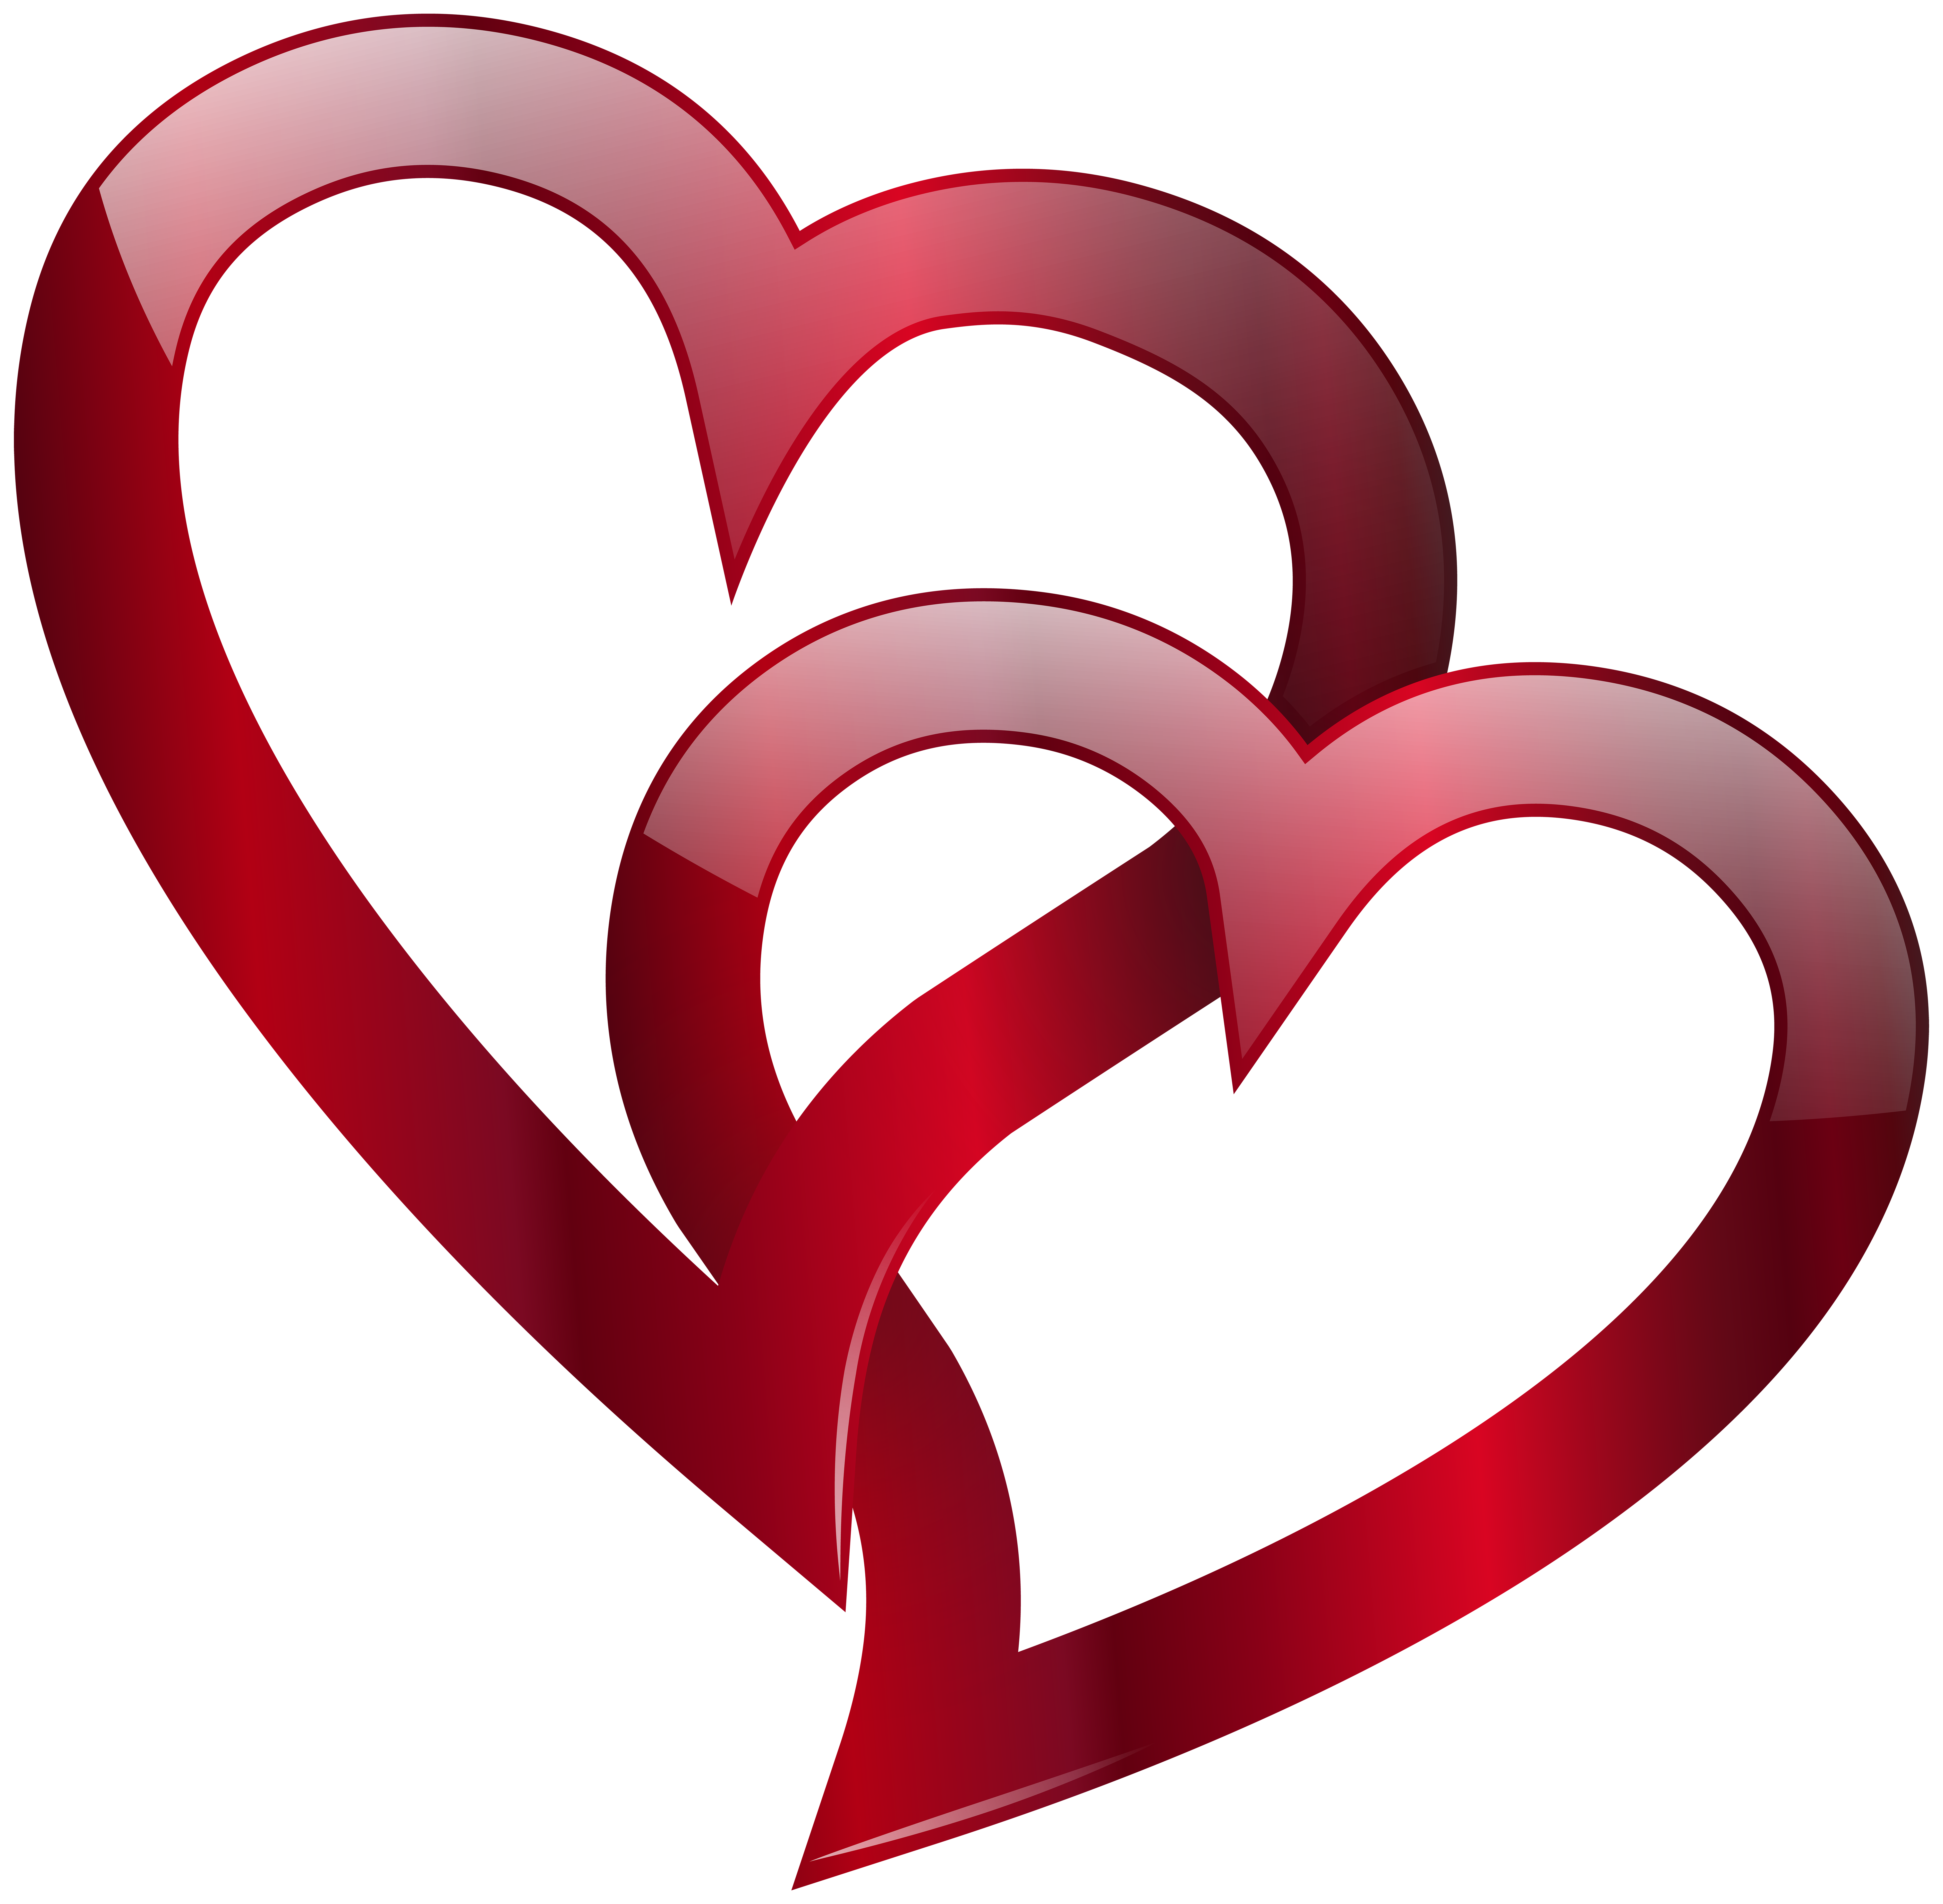 Red Double Heart PNG Clip Art Image.